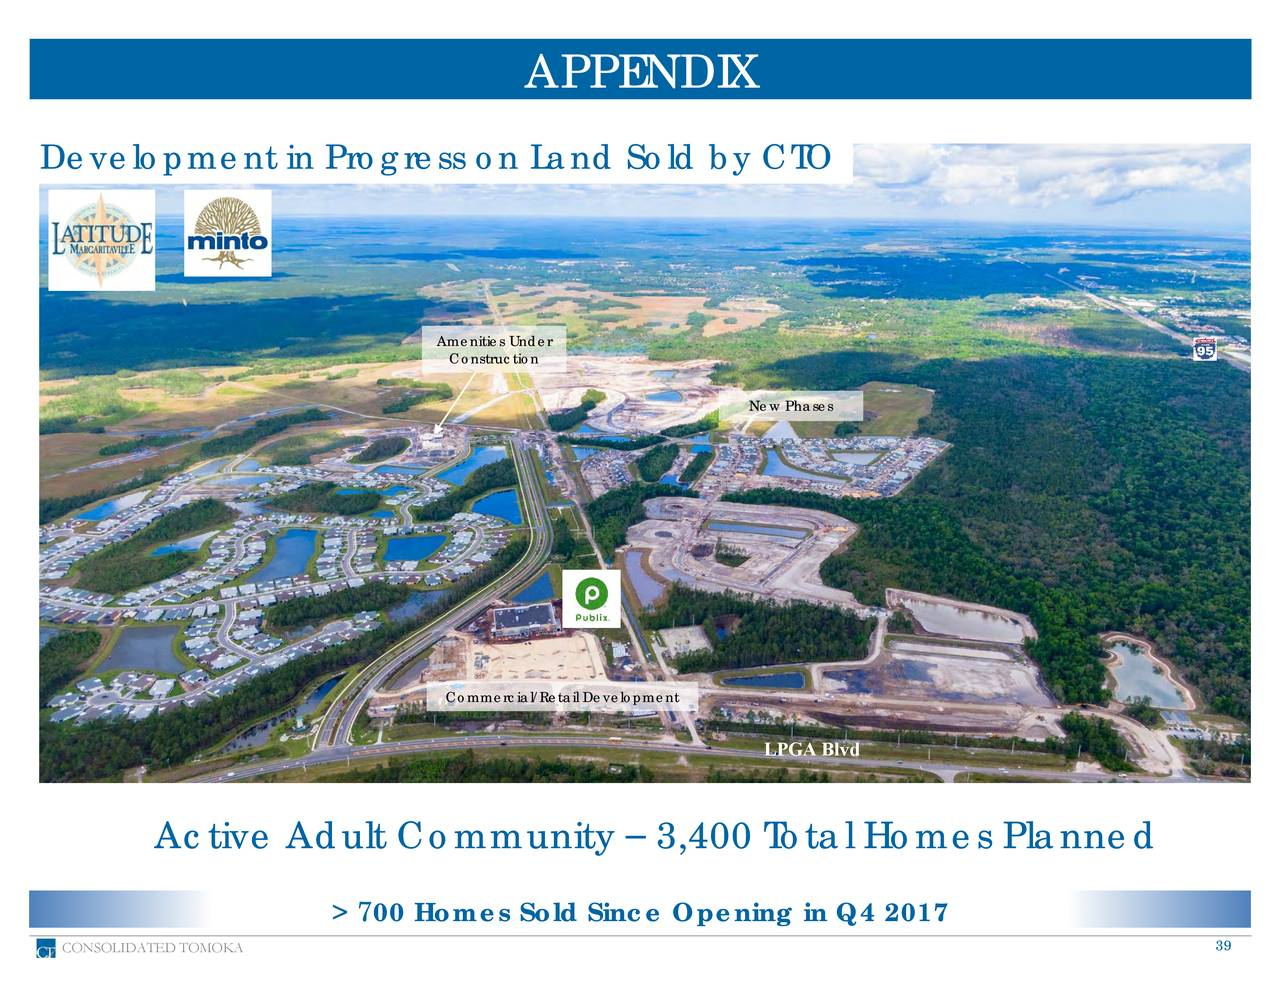 Development in Progress on Land Sold by CTO AConstructioner New Phases Commercial/Retail Development LPGA Blvd Active Adult Community – 3,400 Total Homes Planned > 700 Homes Sold Since Opening in Q4 2017 CONSOLIDATED TOMOKA 39